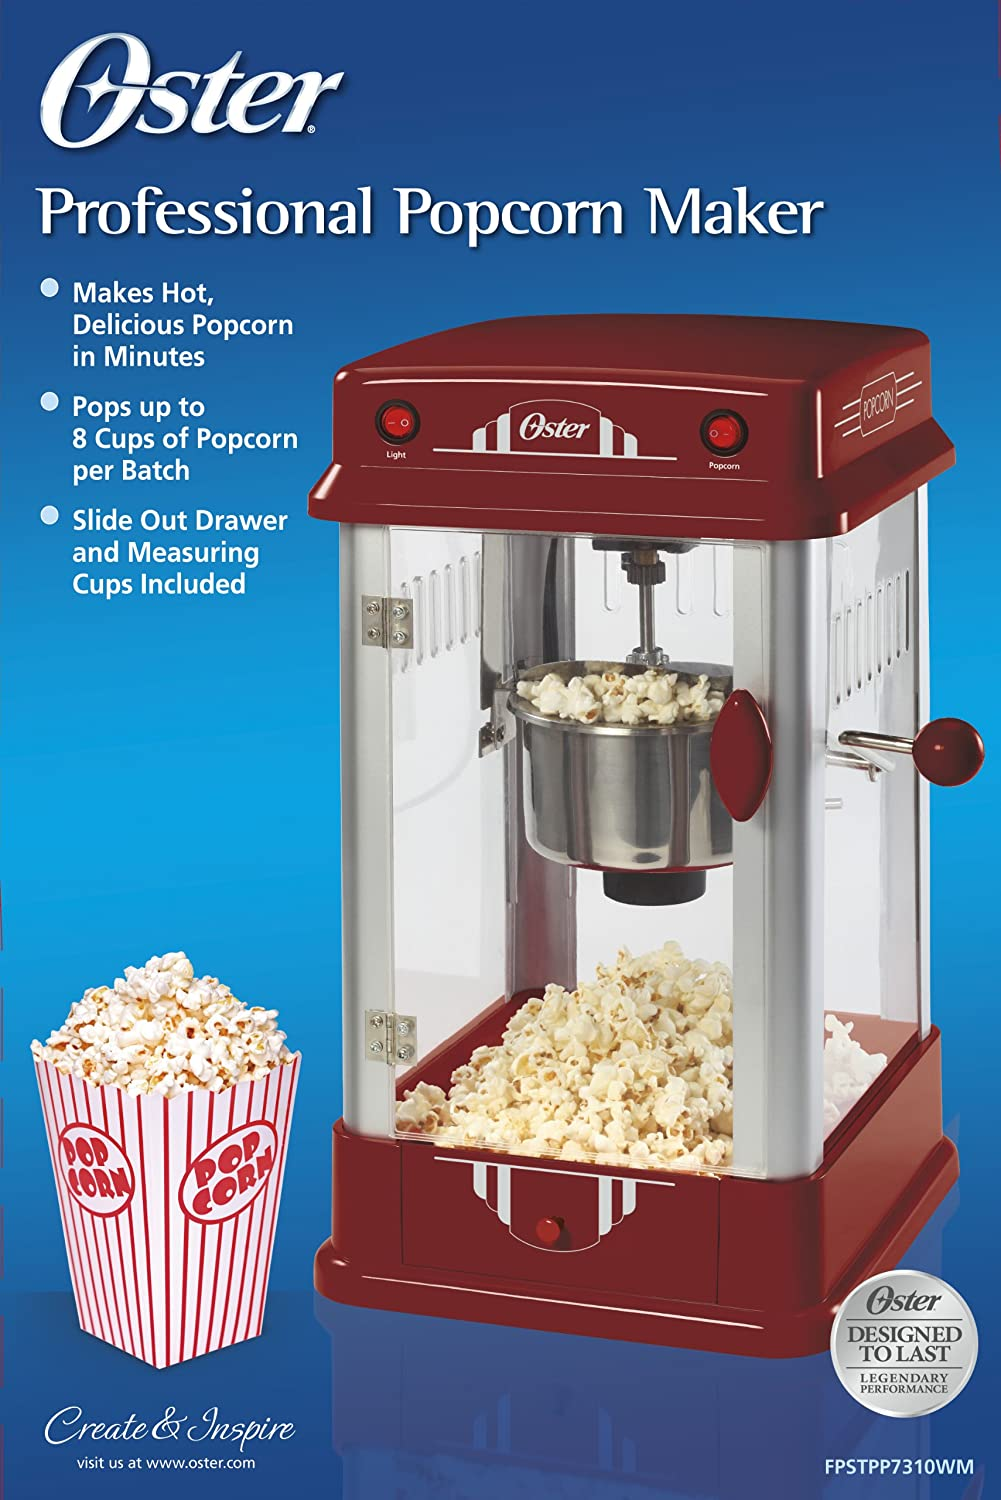 Amazon Oster Fpstpp7310wmnp Professional Popcorn Maker. Amazon Oster Fpstpp7310wmnp Professional Popcorn Maker Electric Poppers Kitchen Dining. Wiring. Oster Popcorn Wiring Schematics At Scoala.co